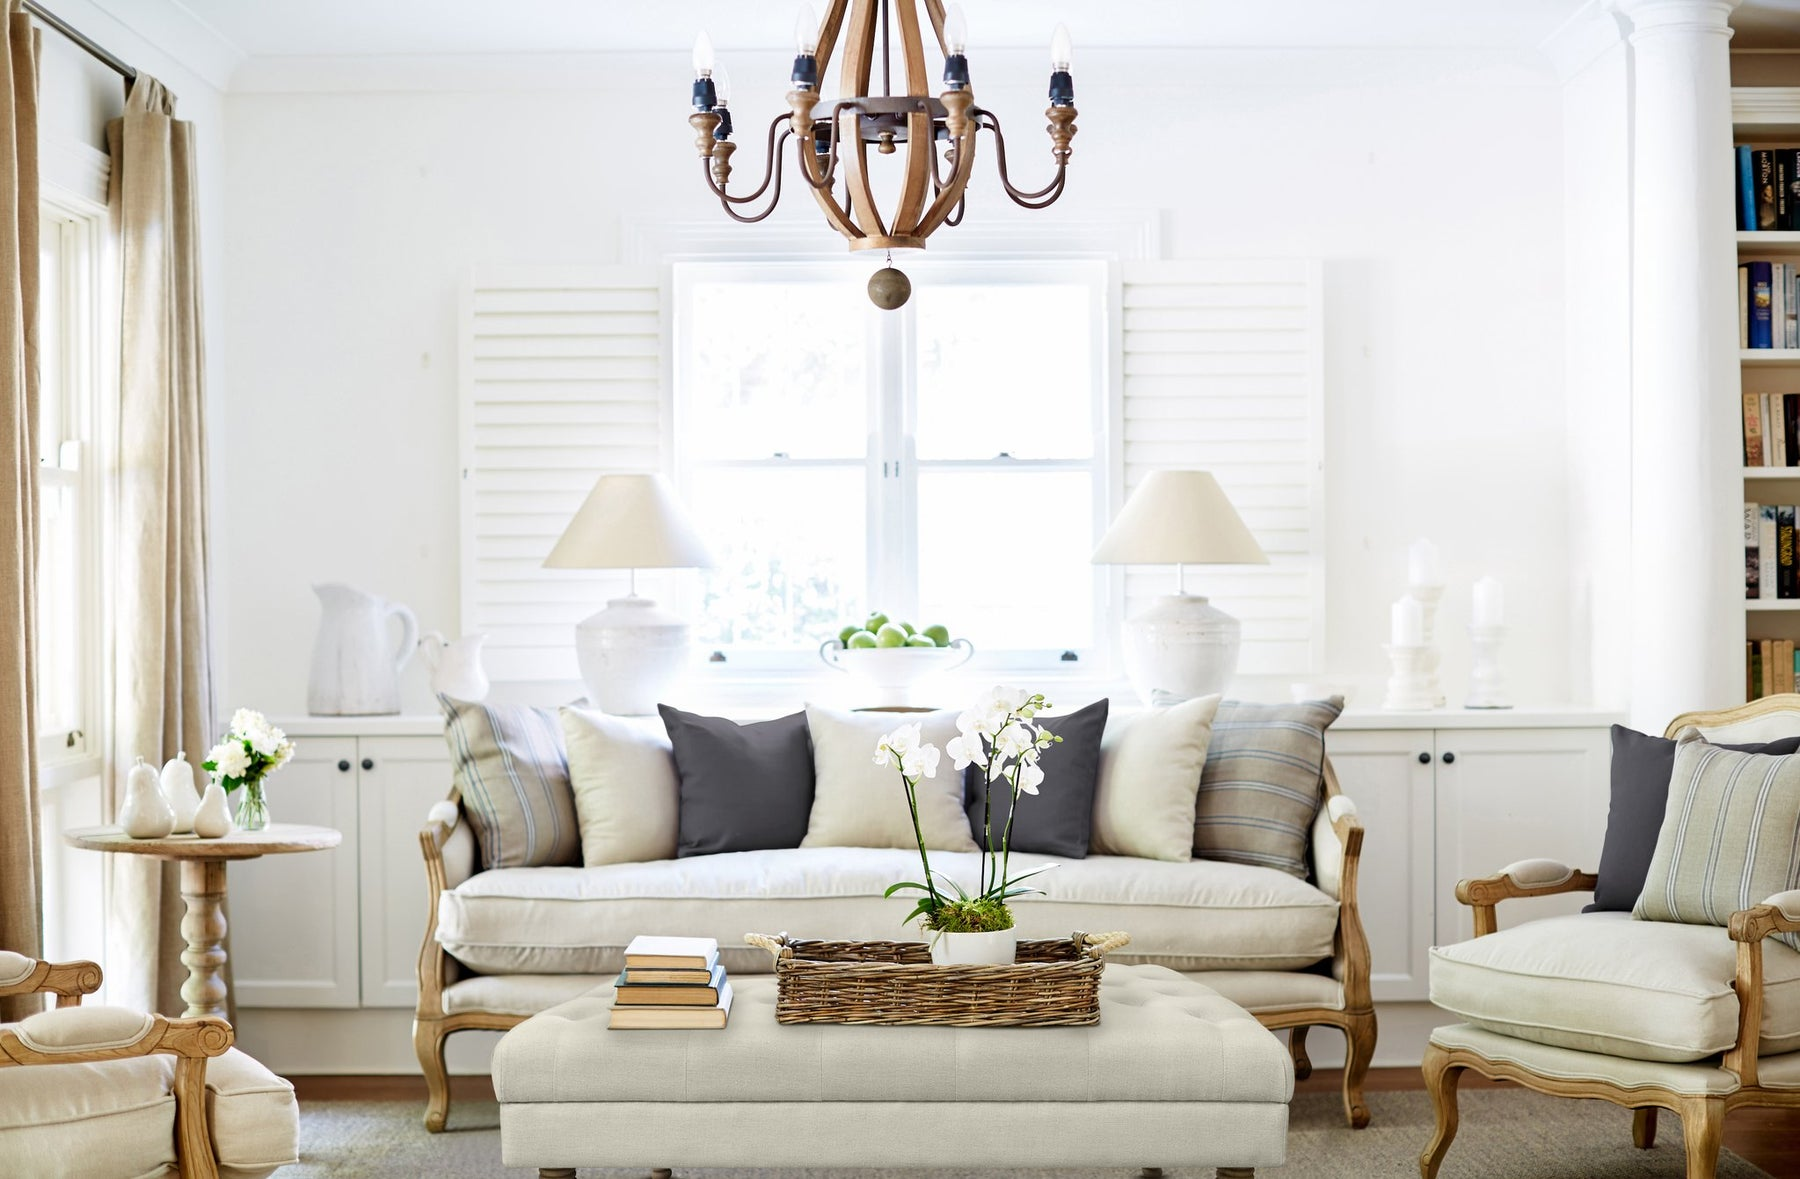 French Provincial Style - Relaxed Elegance for your Living ...